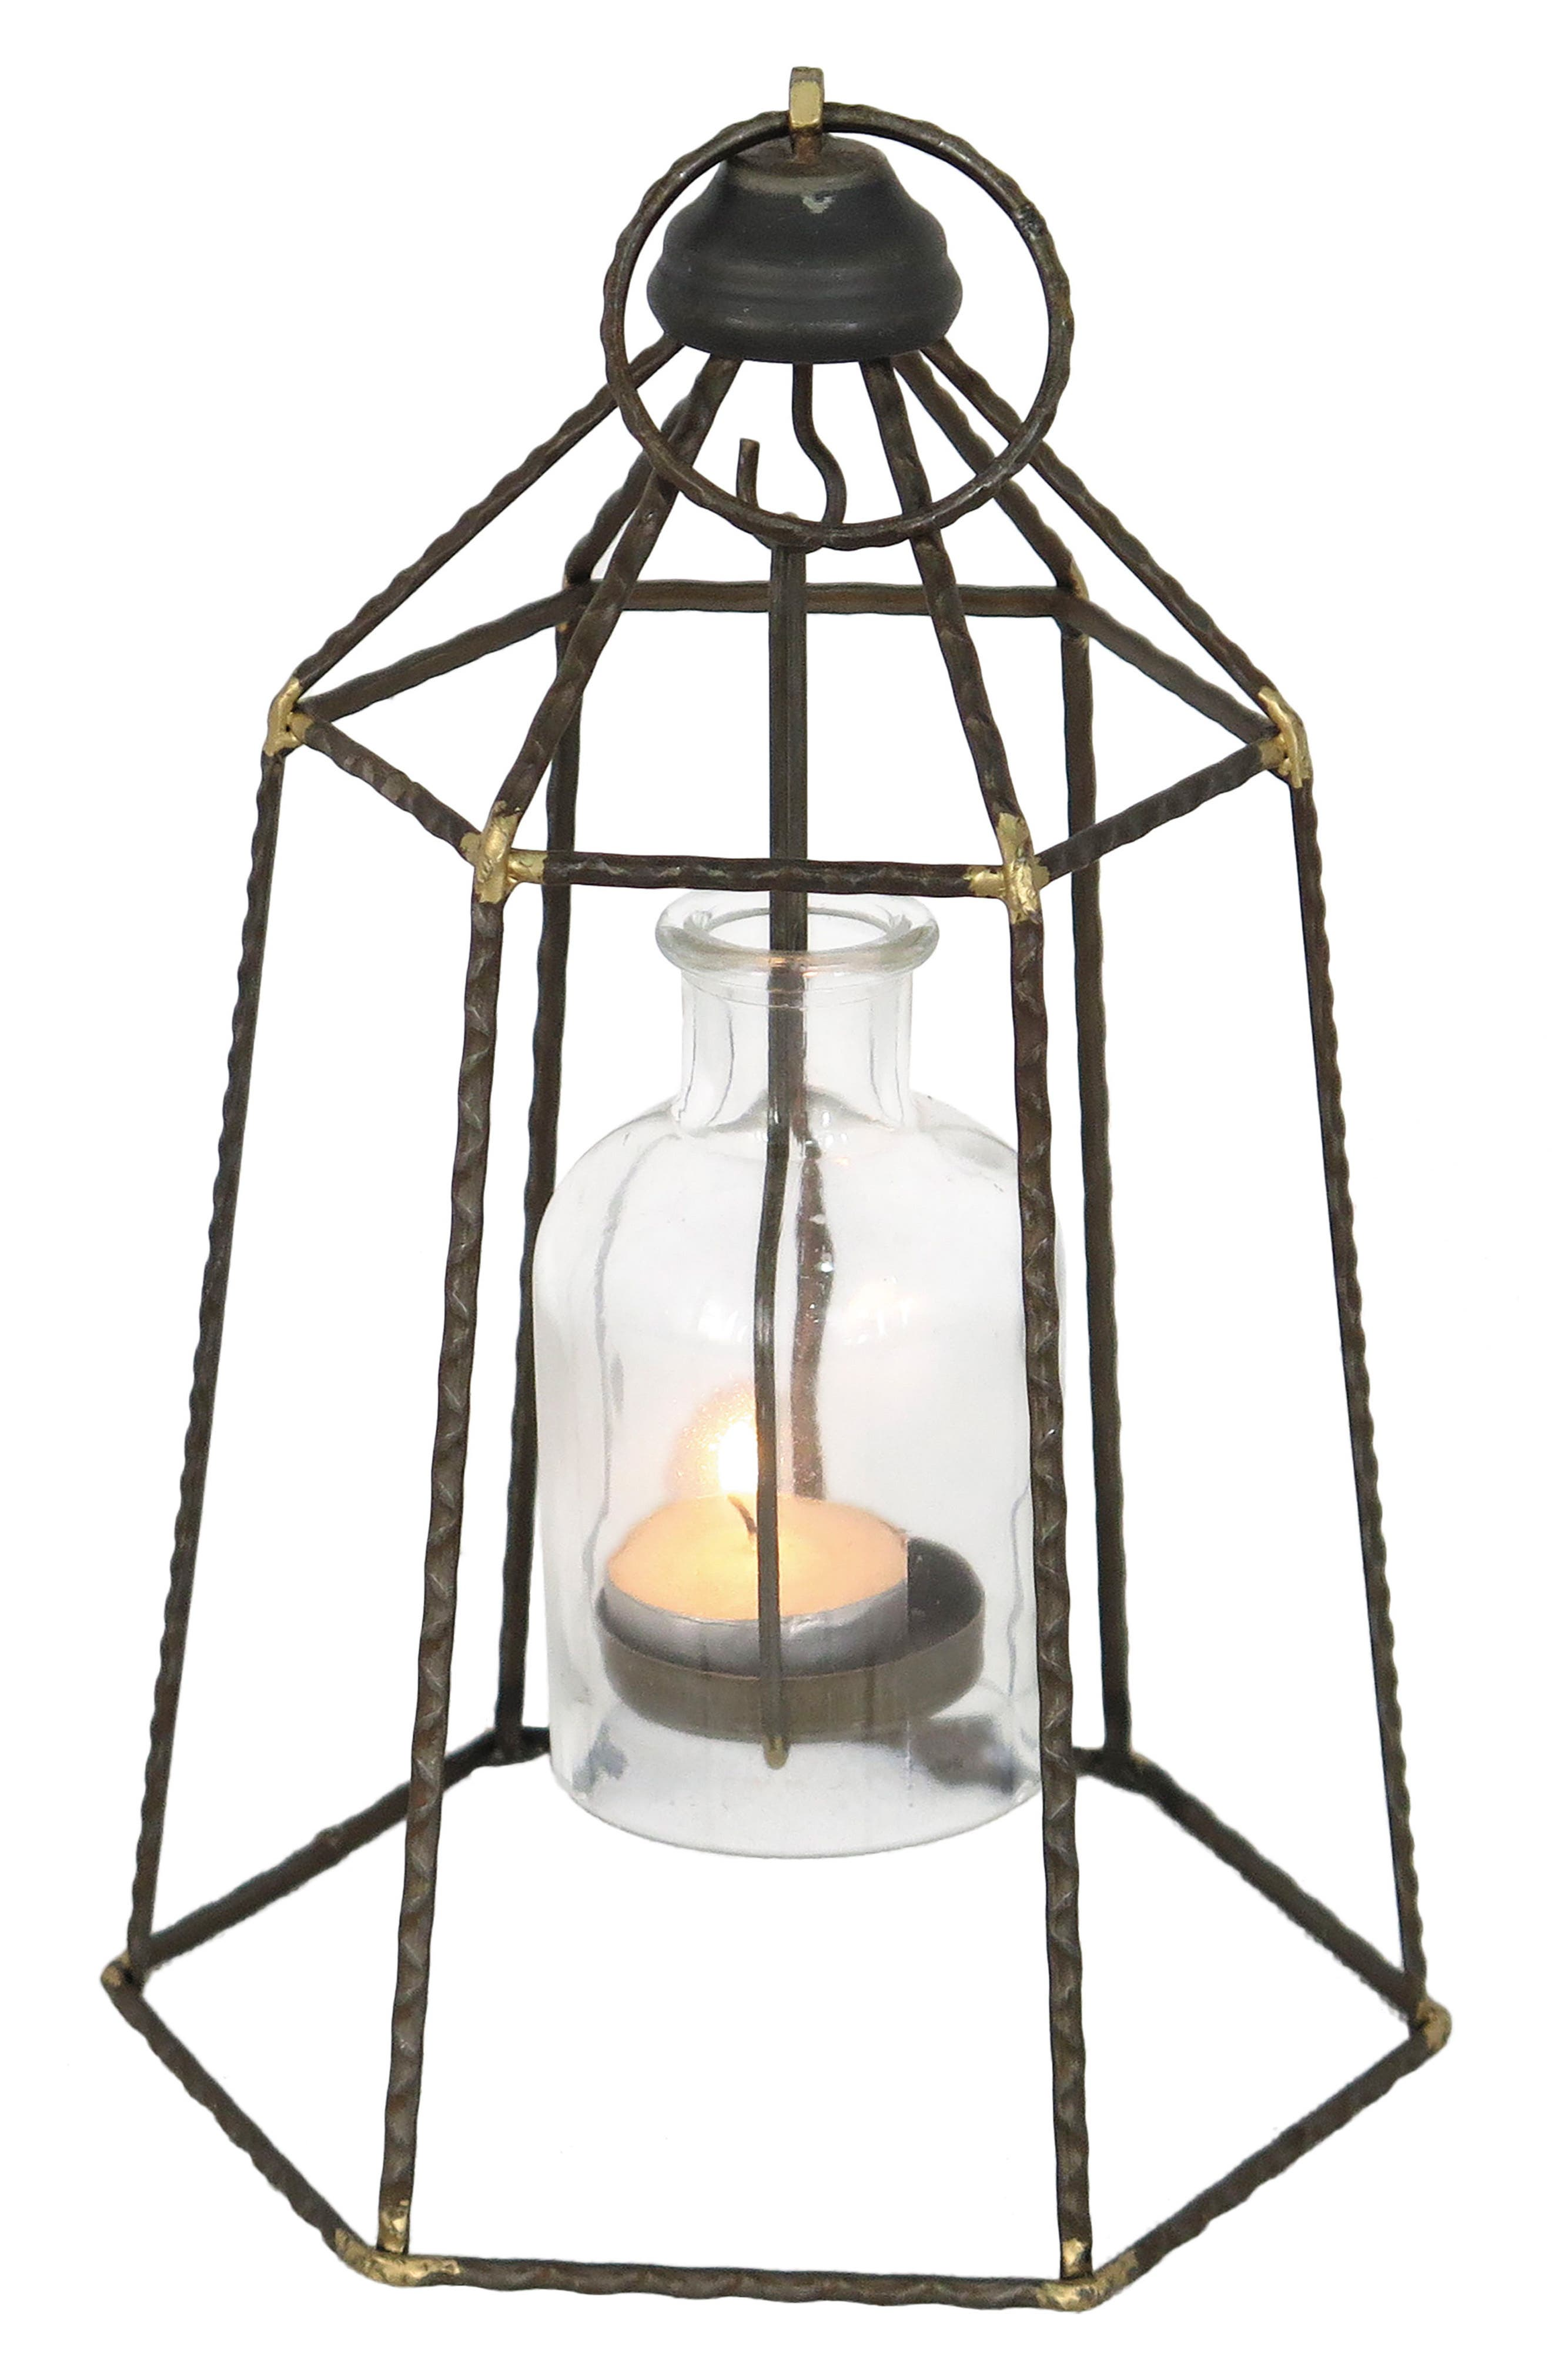 Alternate Image 1 Selected - Foreside Small Pendant Votive Candle Holder